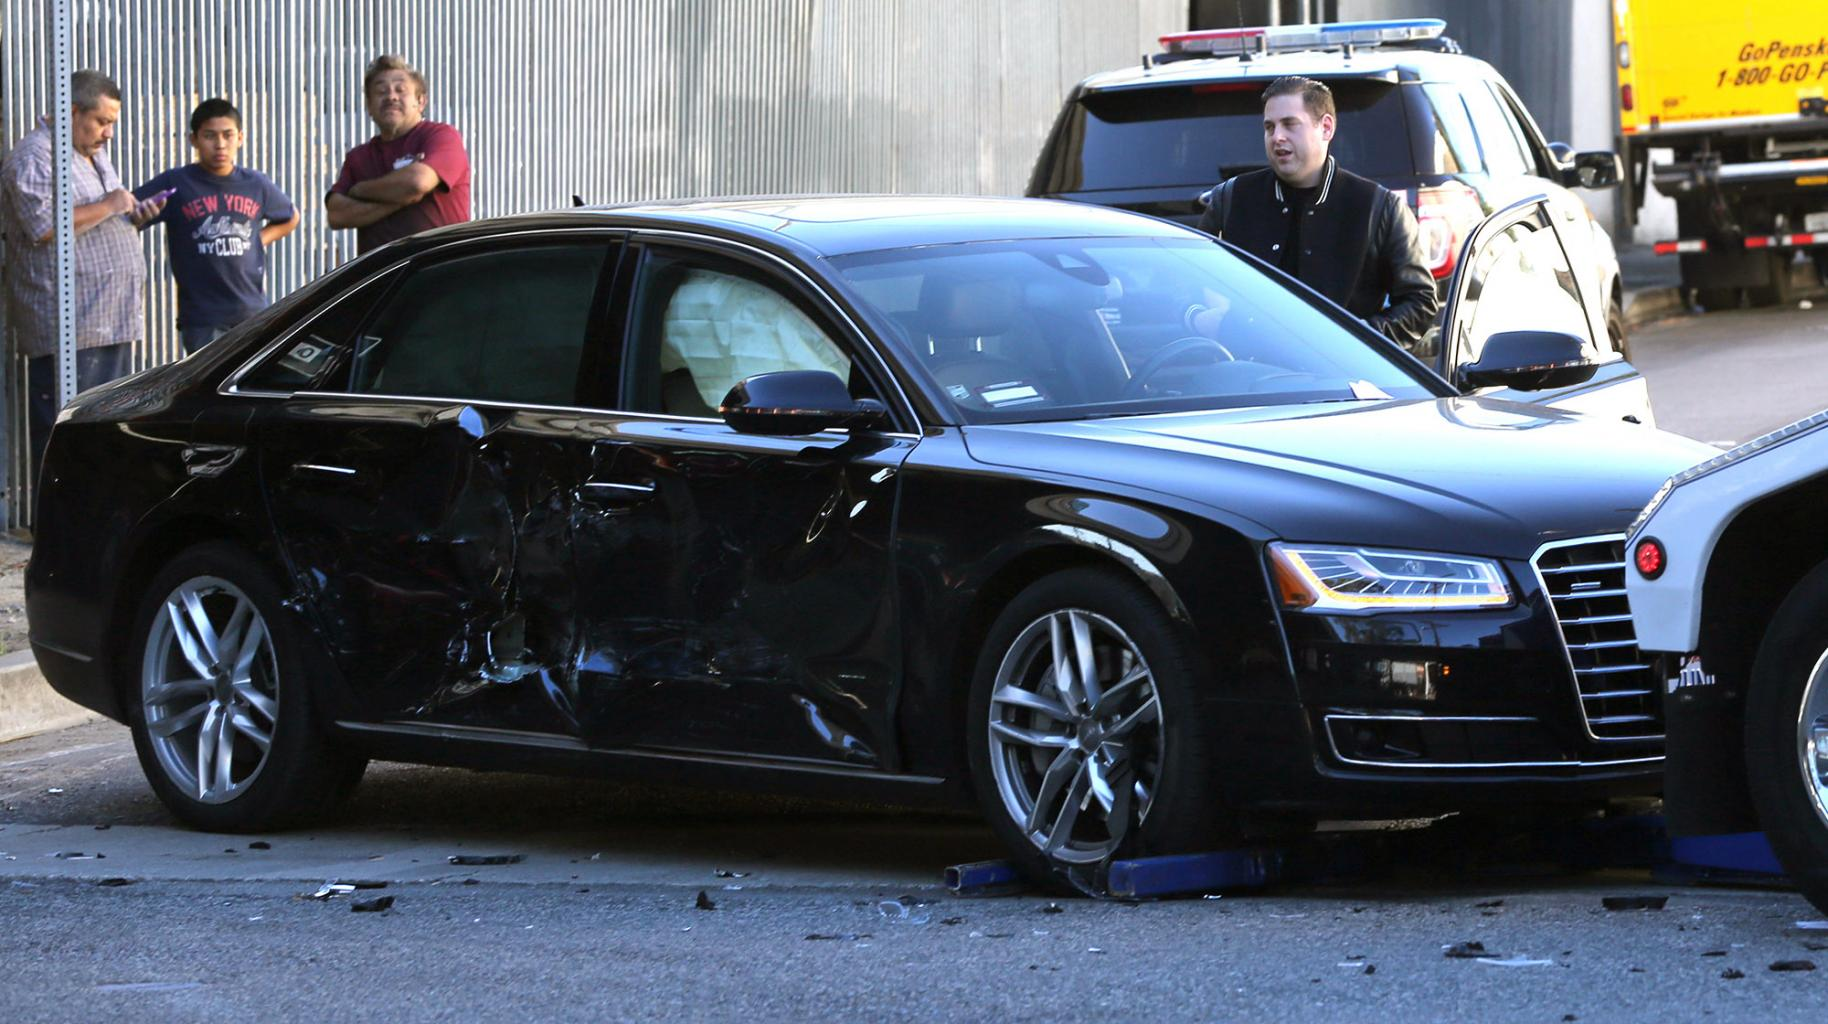 Jonah Hill Appeared 'Shaken' After Car Crash in Downtown Los Angeles